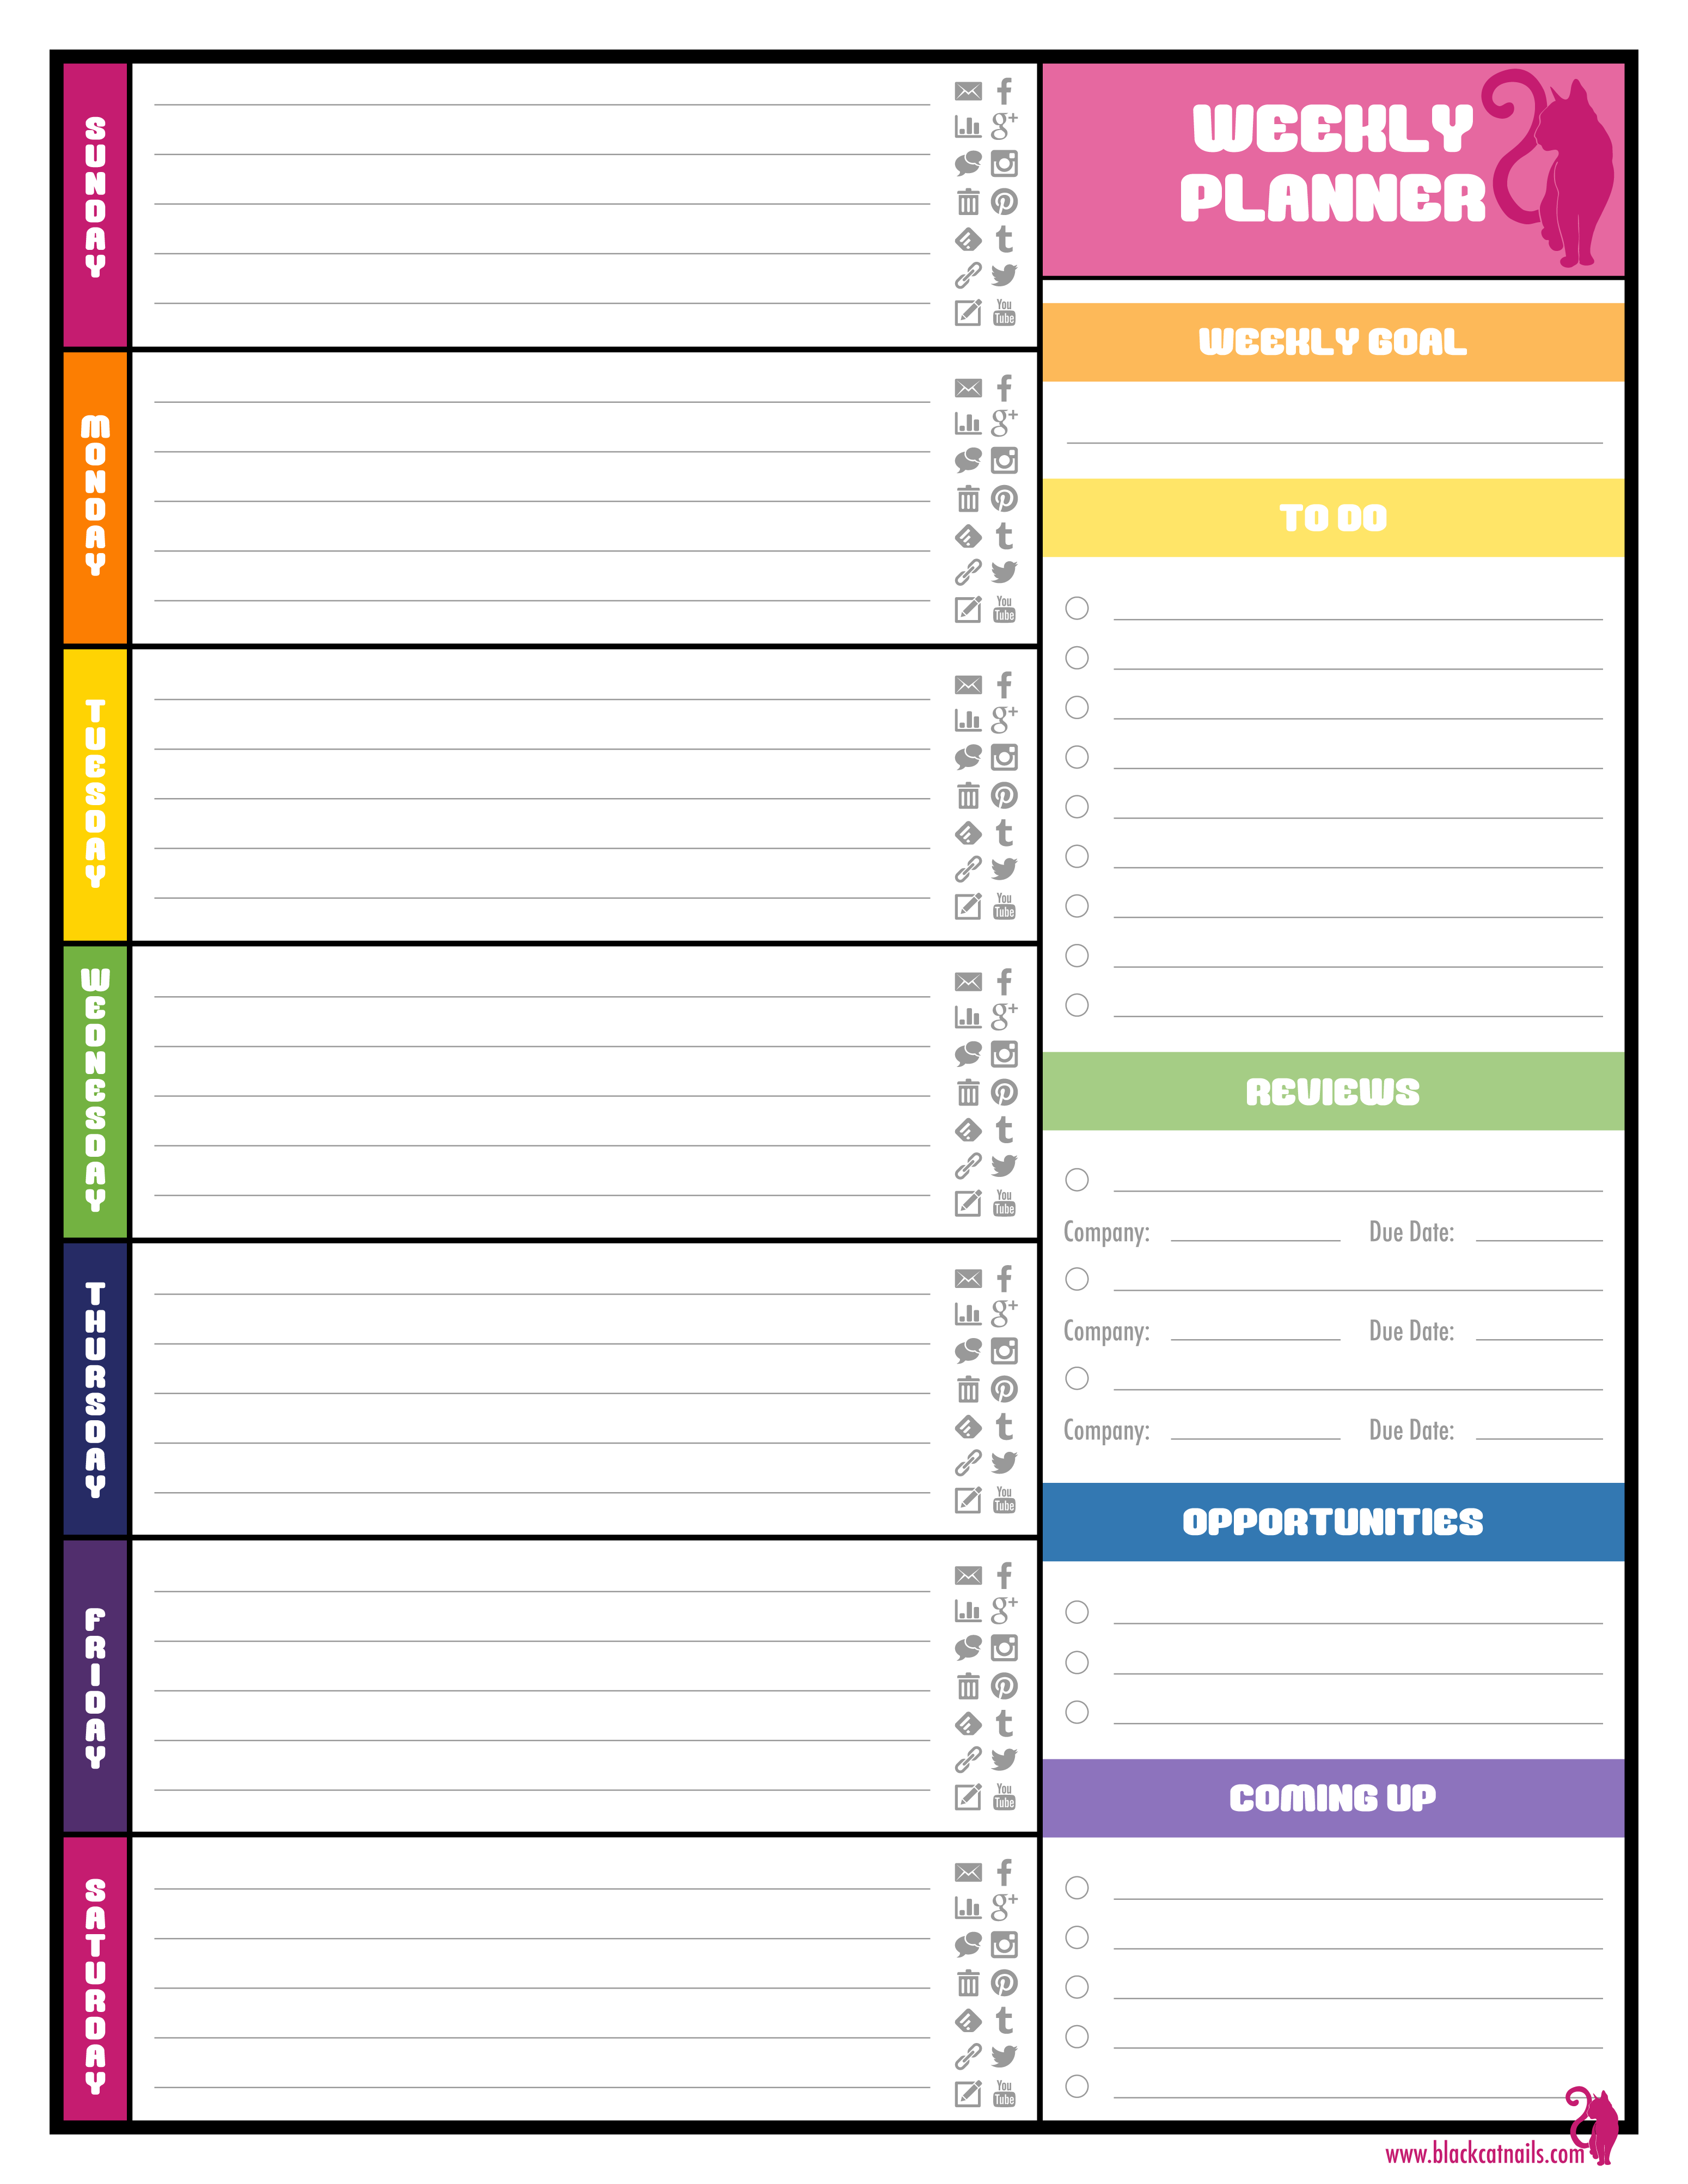 Doc438628 Sample Daily Agenda Daily Planner Template Free – Sample Weekly Agenda